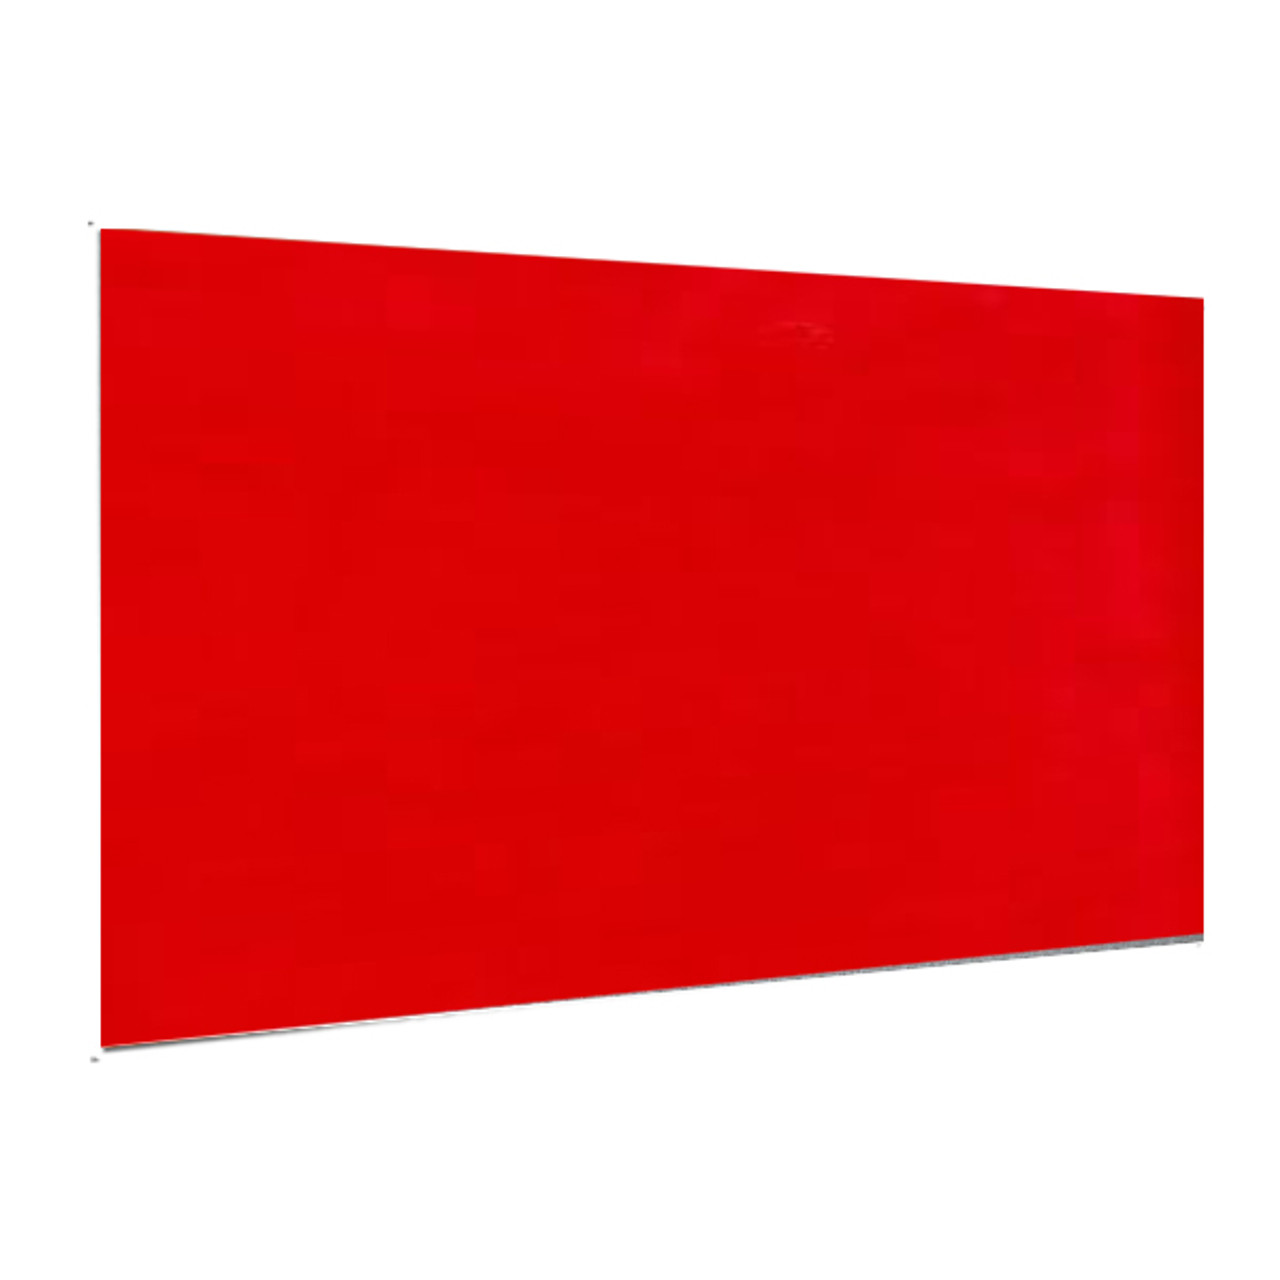 "Showcard -Scarlet Red - 28"" x 44"""